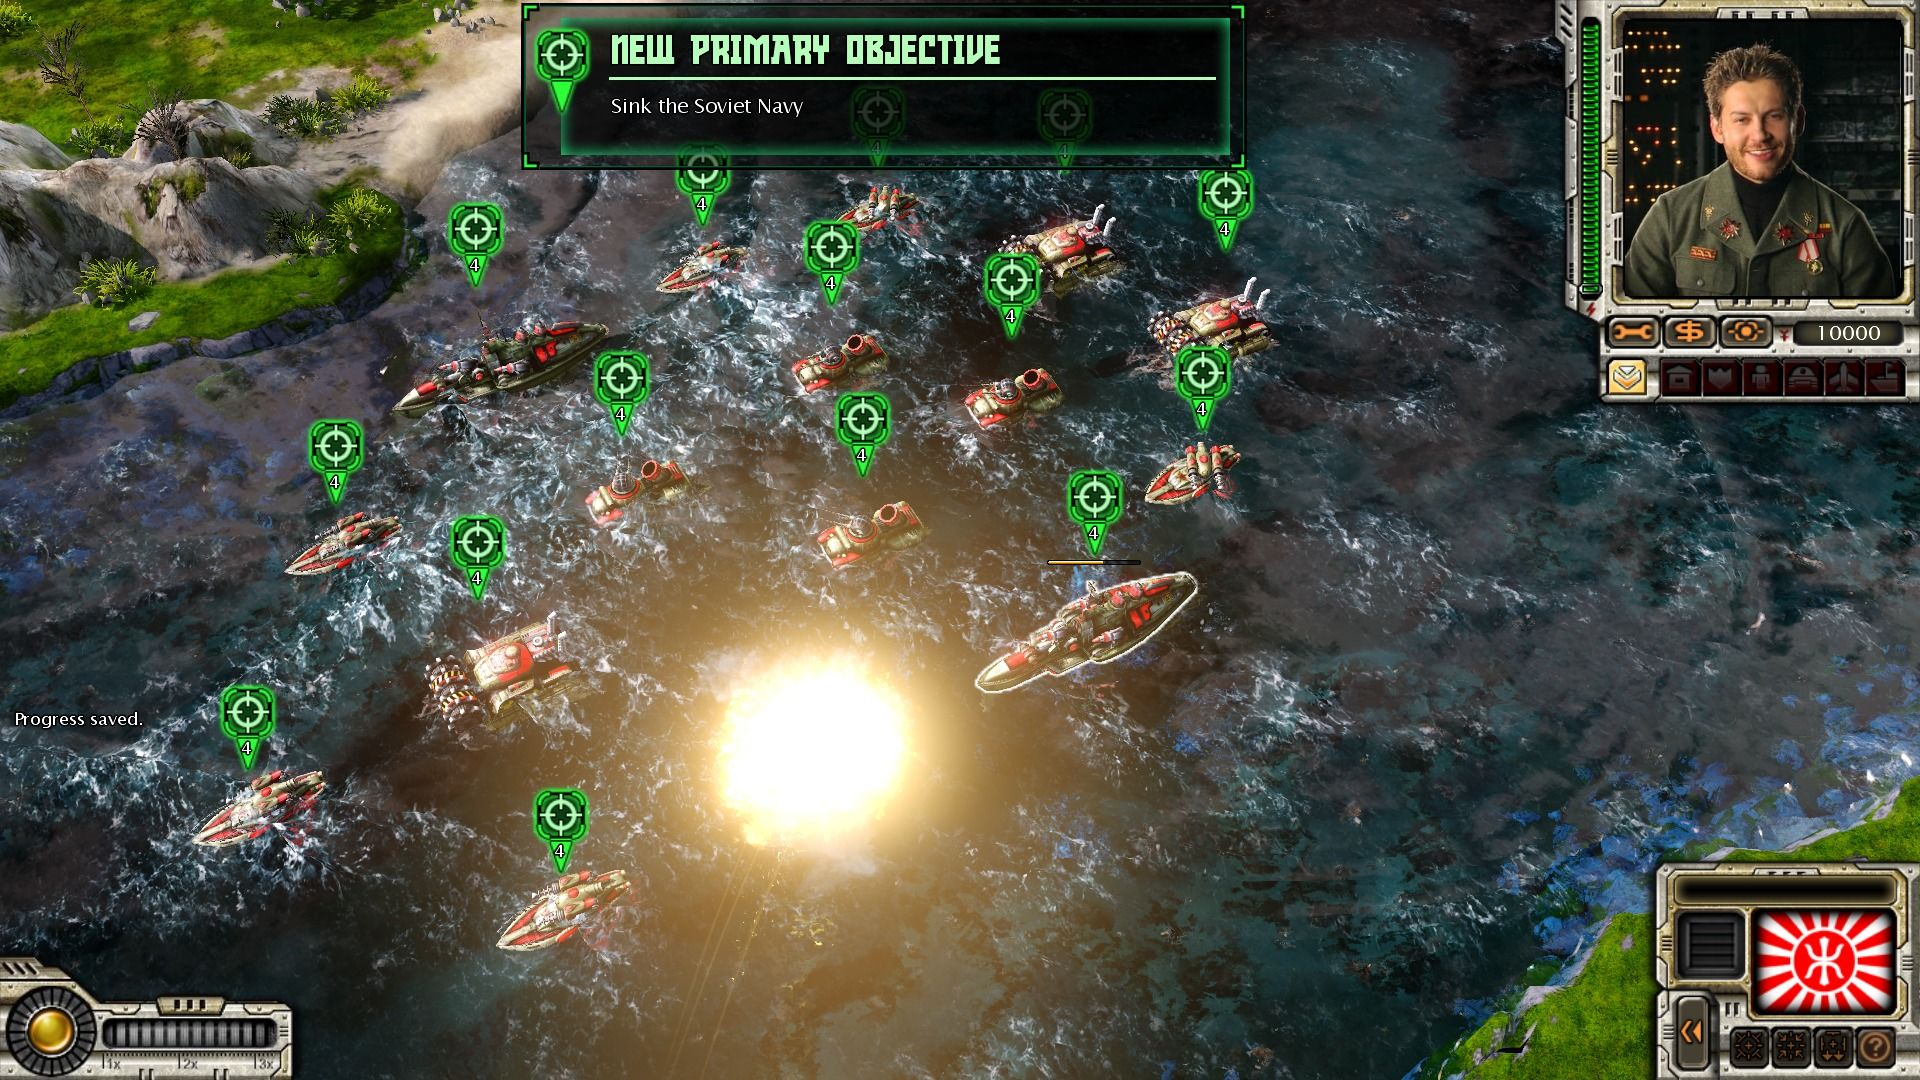 Command & Conquer: Red Alert 3 - Uprising Windows Soviet navy is approaching our positions.